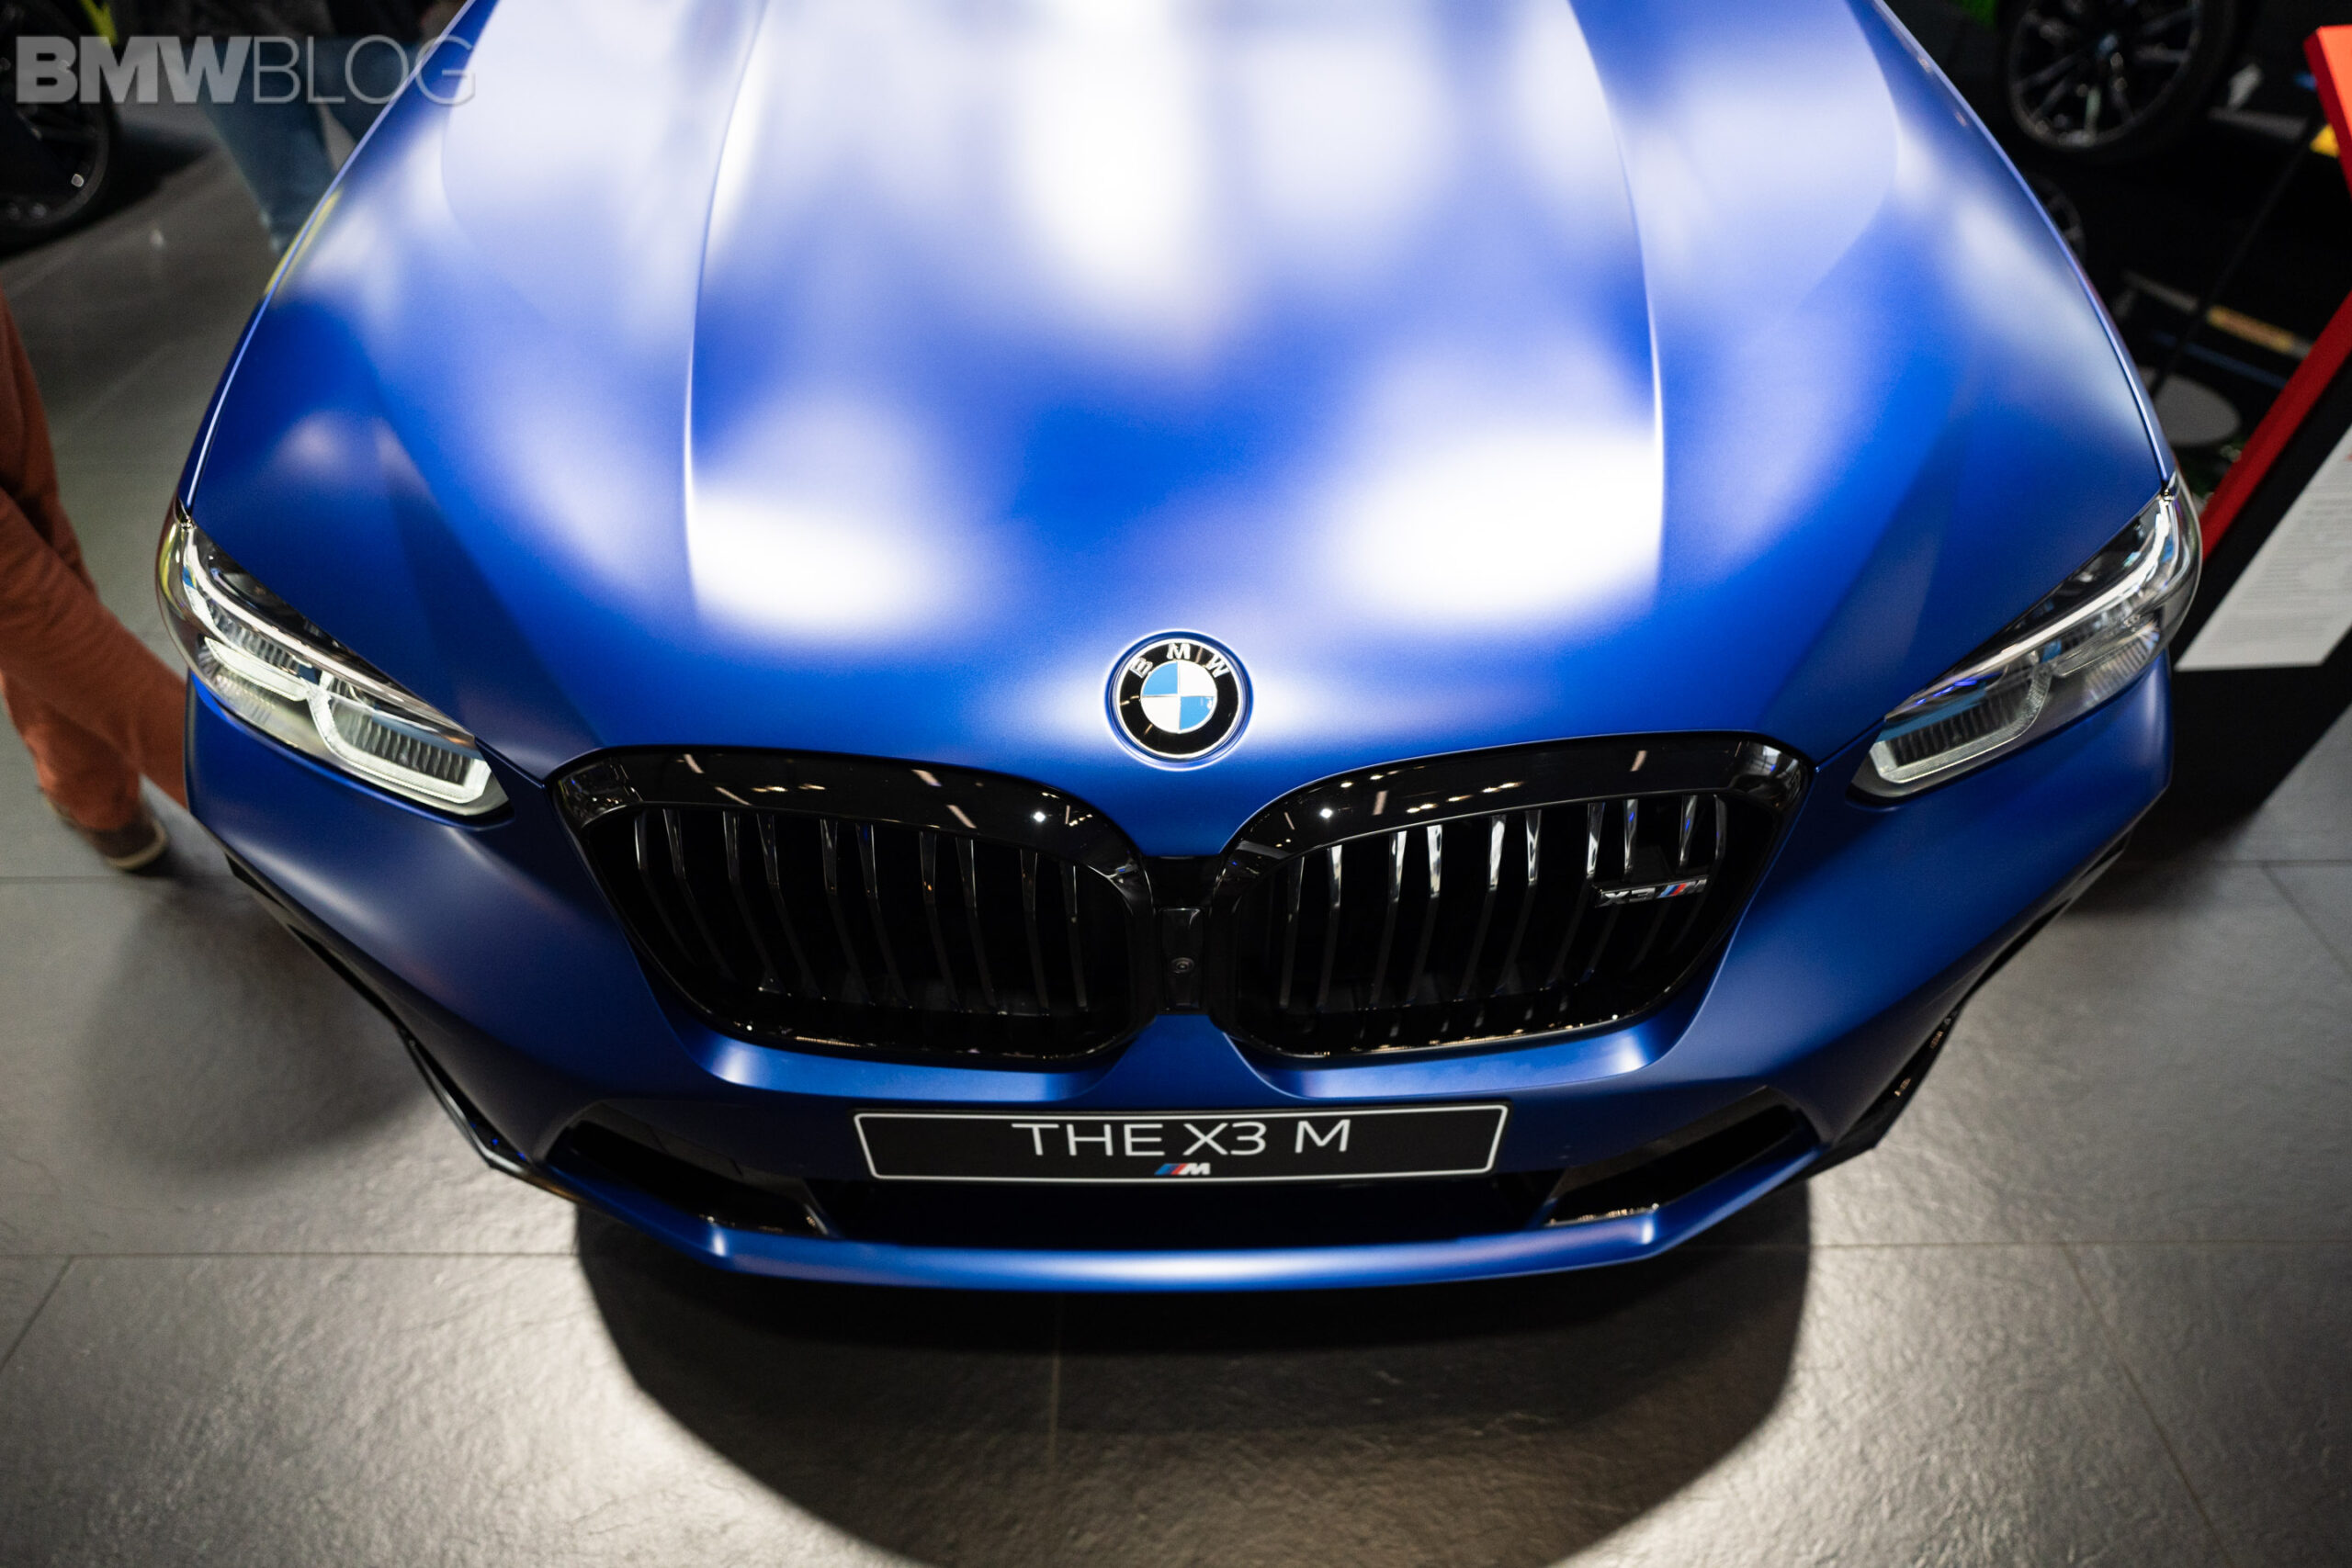 bmw x3 m facelift photos 11 scaled